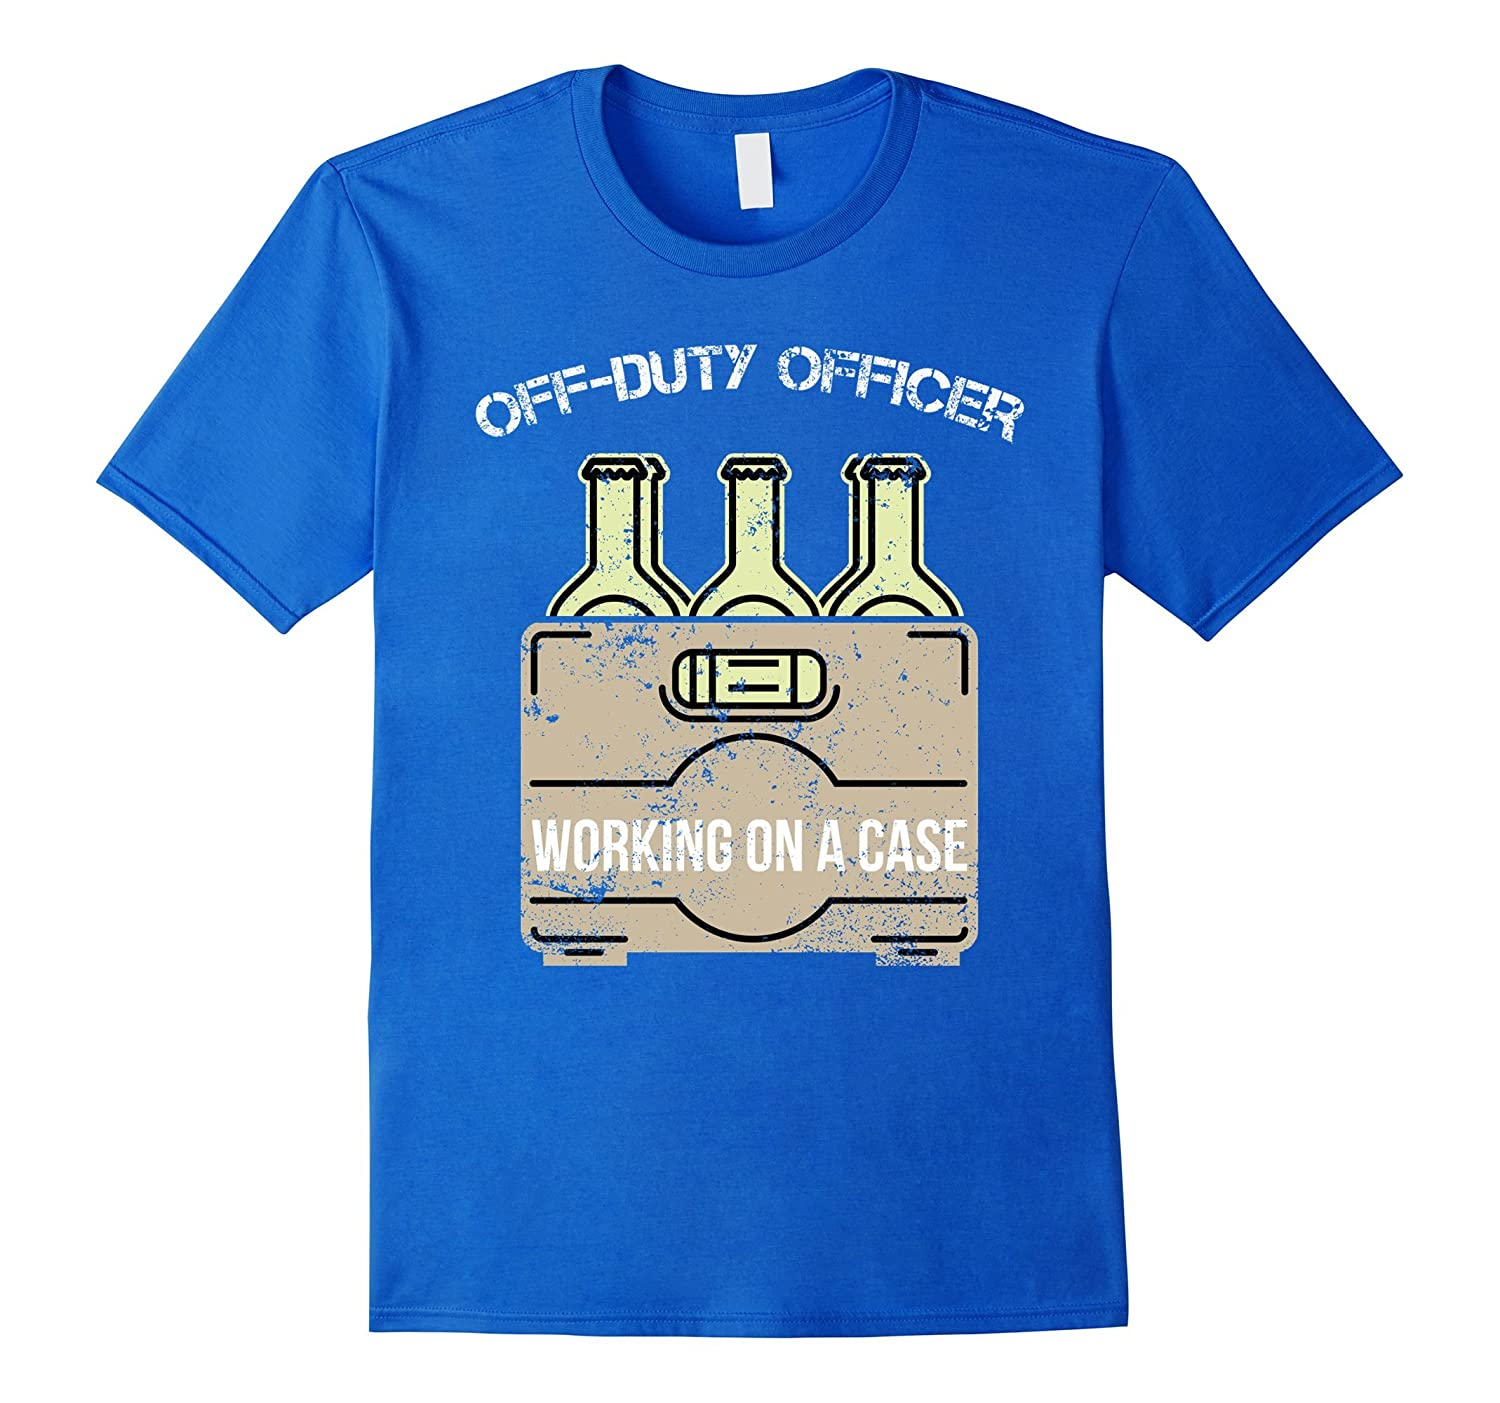 622ad274 Off Duty Officer Funny Police T Shirt Funny Police Gifts-CL – Colamaga